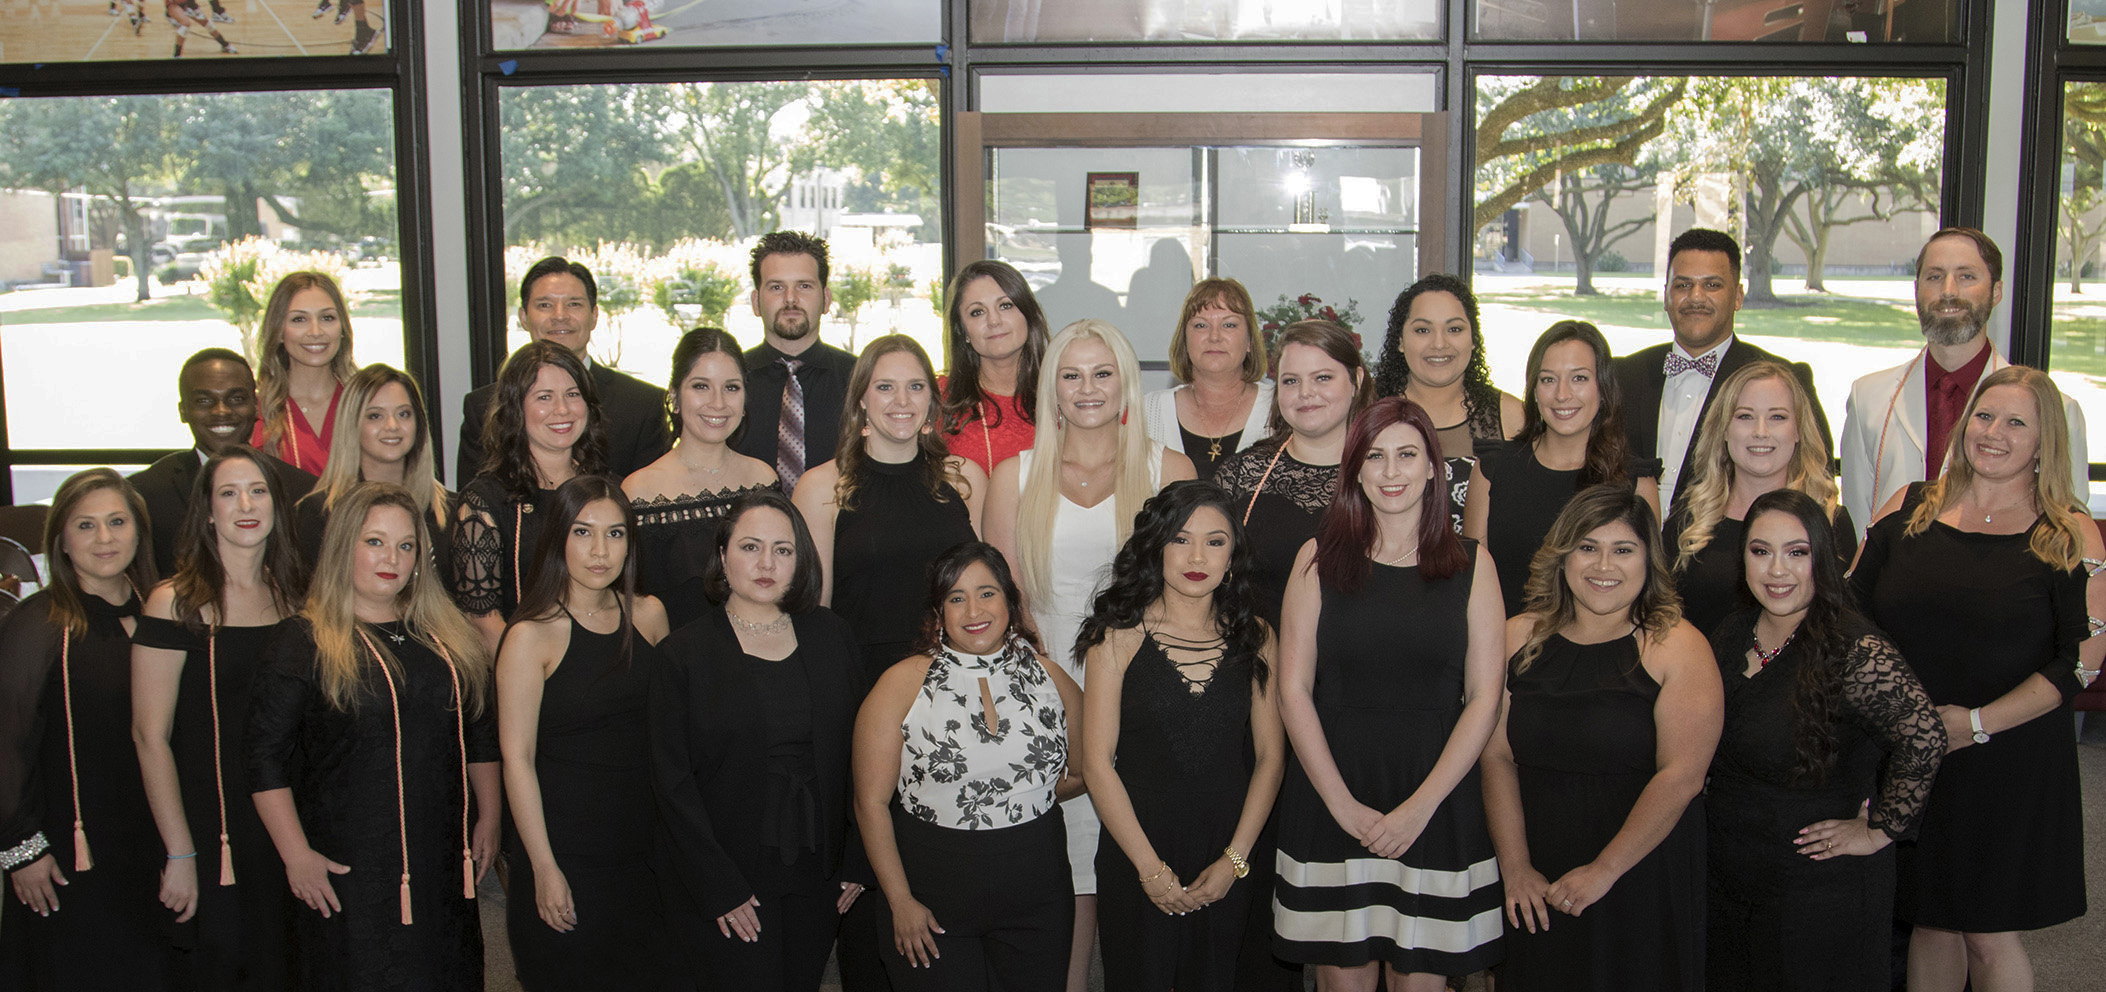 WCJC ASSOCIATE DEGREE NURSING PROGRAM GRADUATES 28